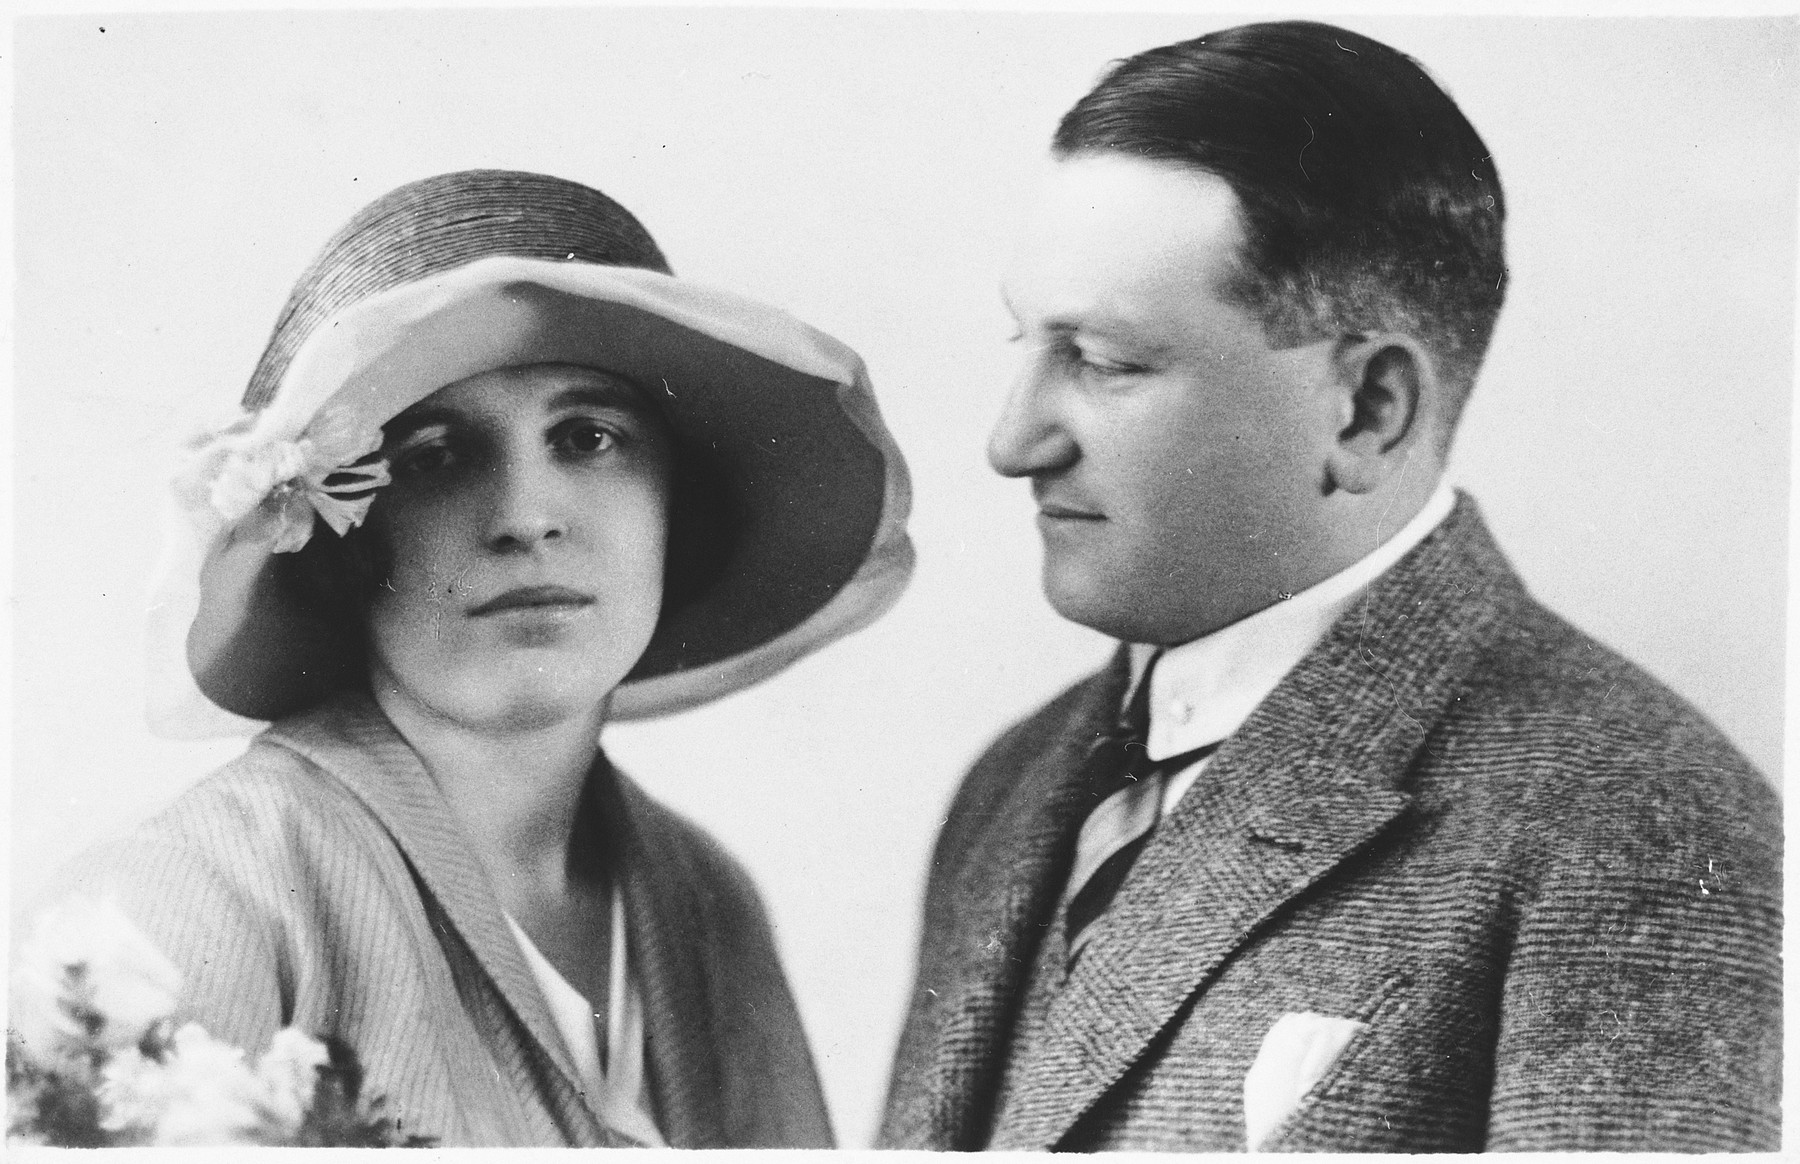 Portrait of a Czech Jewish couple.  Pictured are Lyduska and Tony Kares. They later perished in Auschwitz.